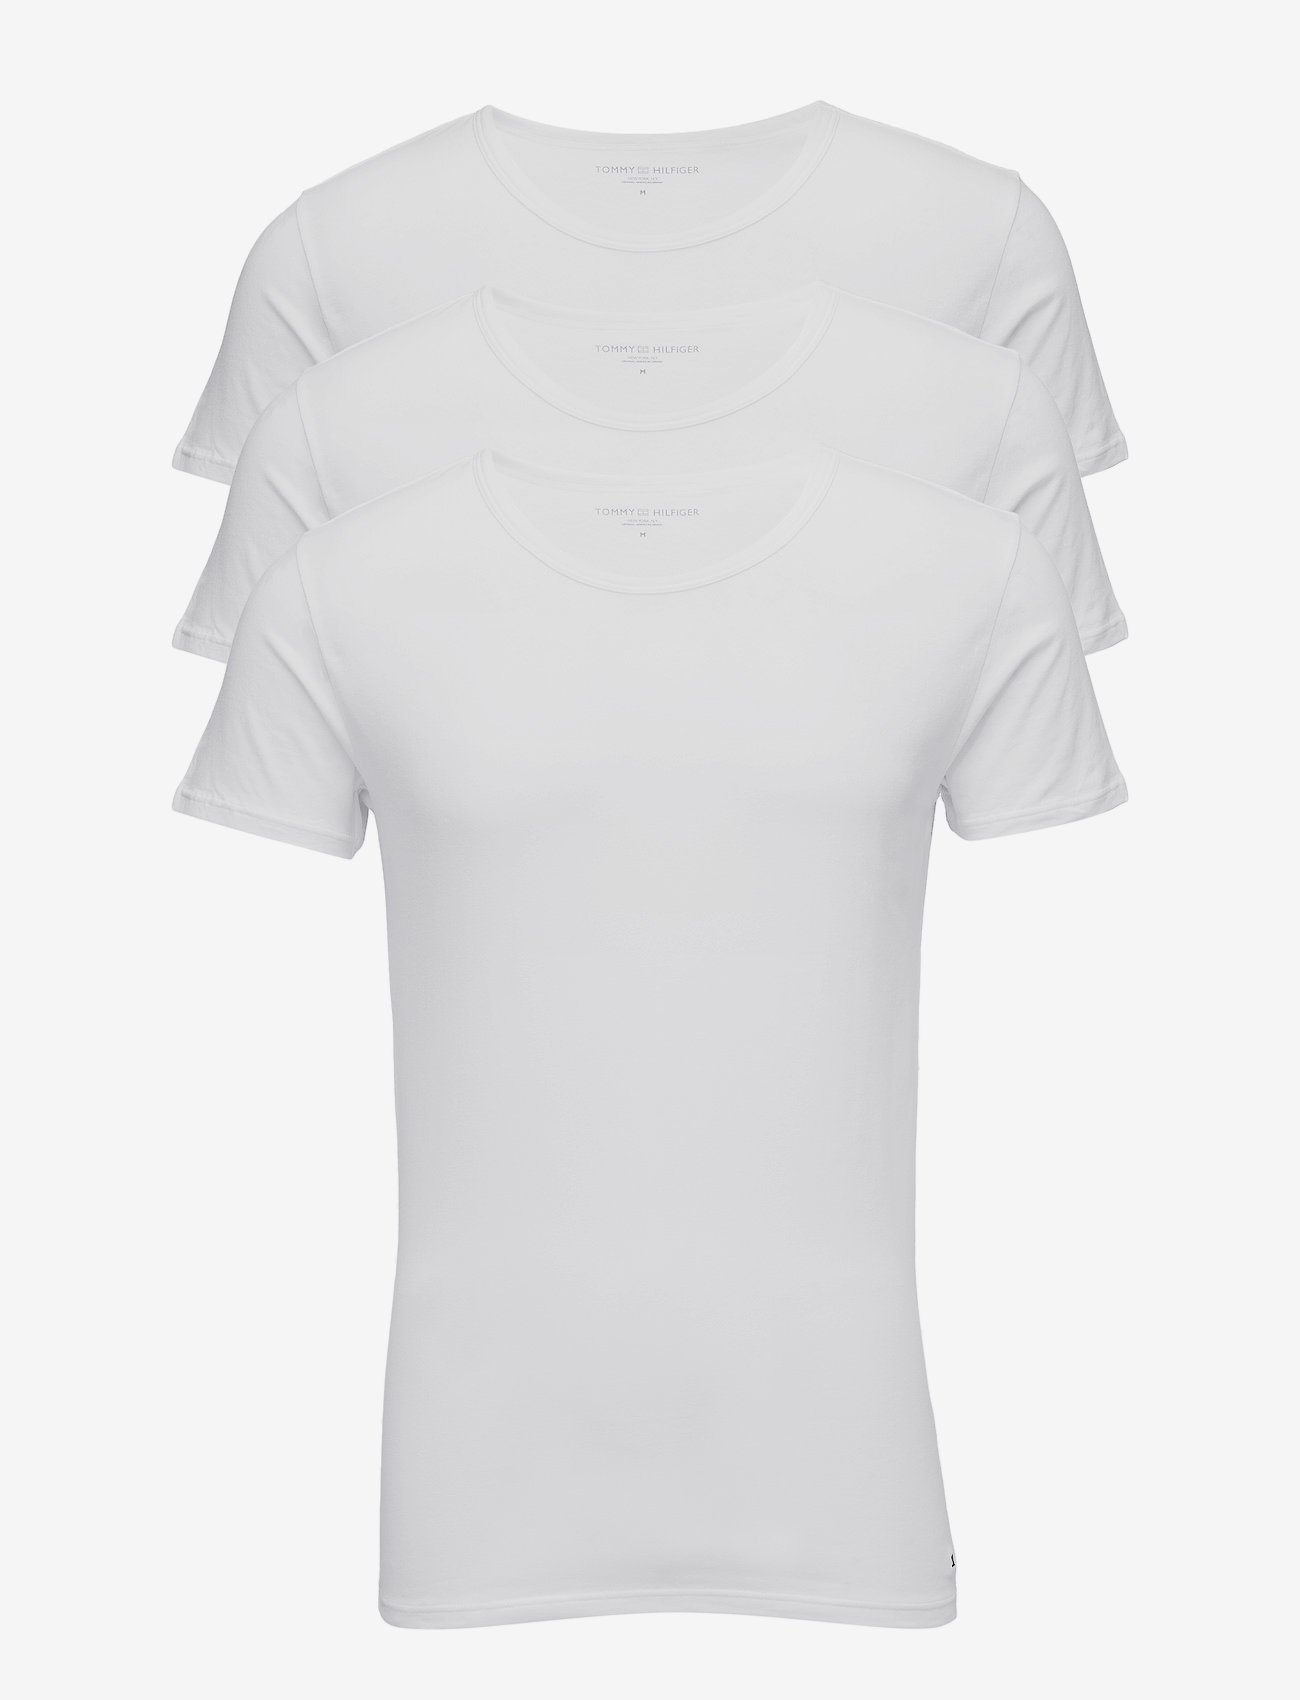 Tommy Hilfiger - STRETCH CN TEE SS 3PACK - multipack - white - 0